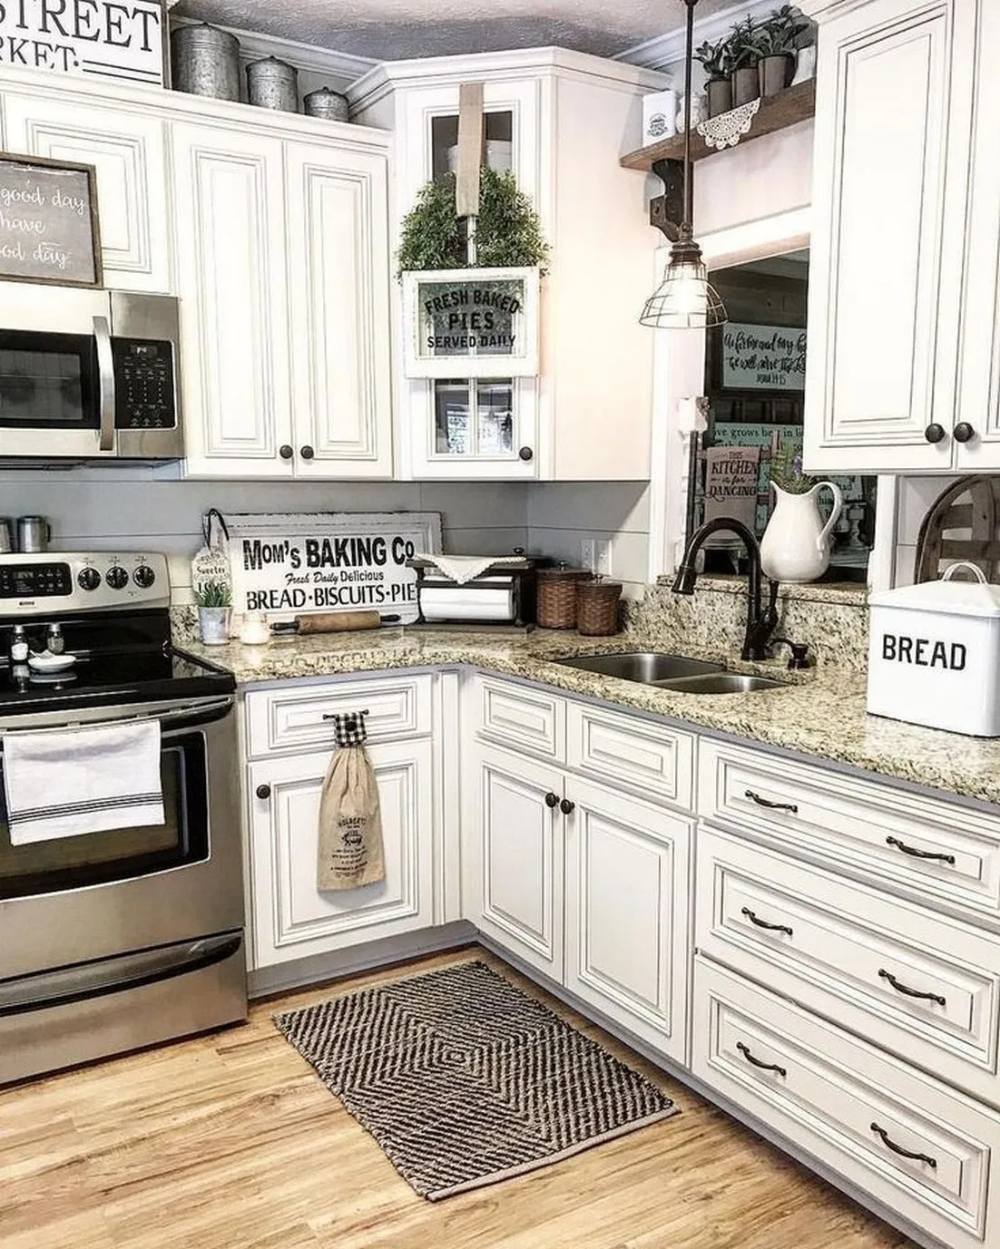 70 Best Farm House Kitchen Decorating Ideas  feryhan.com #kitchen #kitchendesign #kitchenideas ... country style rustic. The country rustic kitchen exudes warmth that calls you to come in and stay awhile. Think light and bright. Think white kitchen...try kitchen could be wood wicker or white wrought iron.A rustic kitchen should never be cluttered. The feel should be warm and inviting regardless of #journal.rusticstylemagazine.com #rustic-kitchen-small #rustic